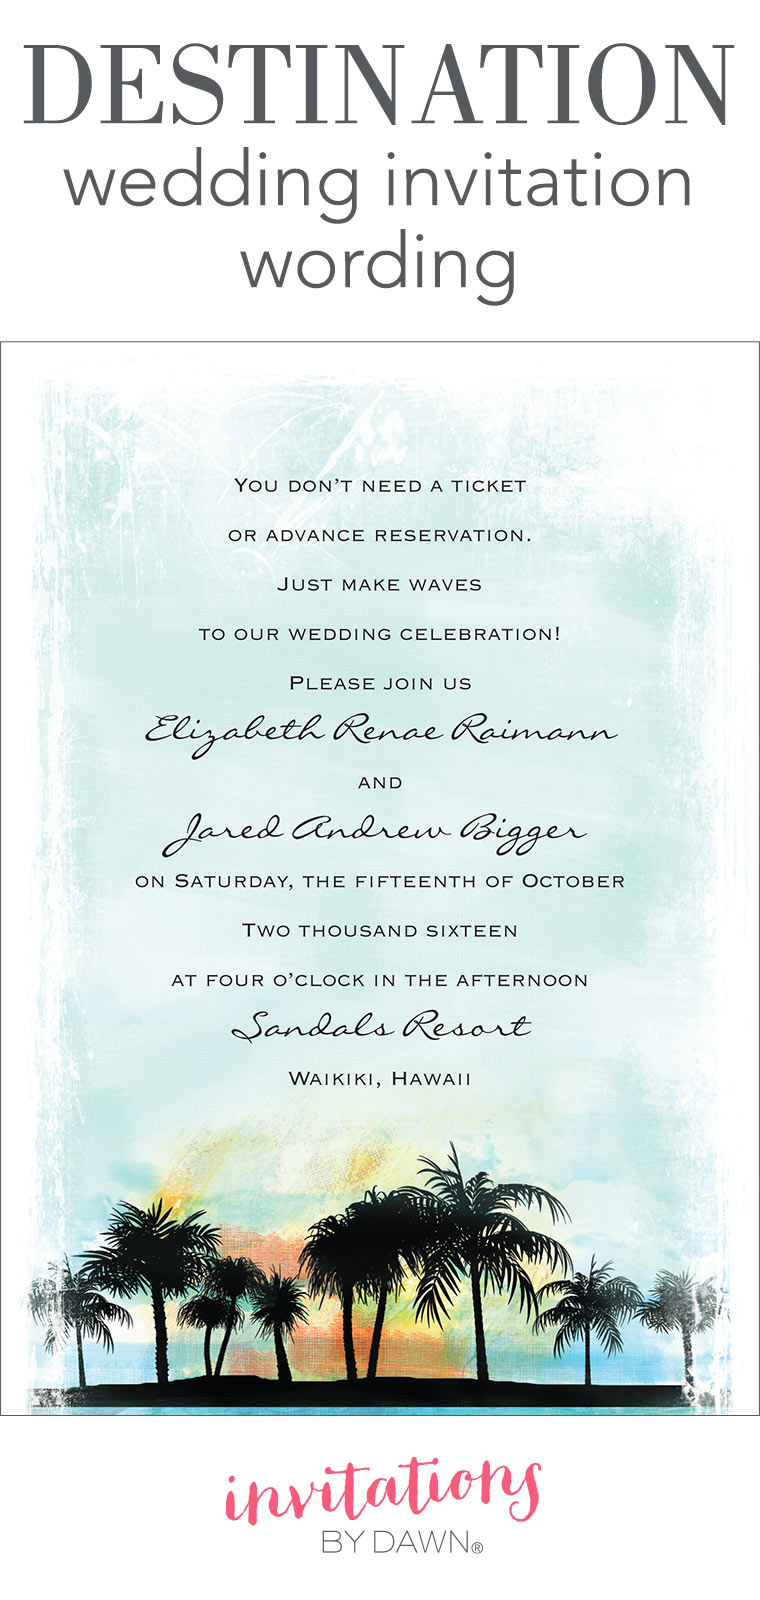 Destination wedding invitation wording invitations by dawn stopboris Choice Image